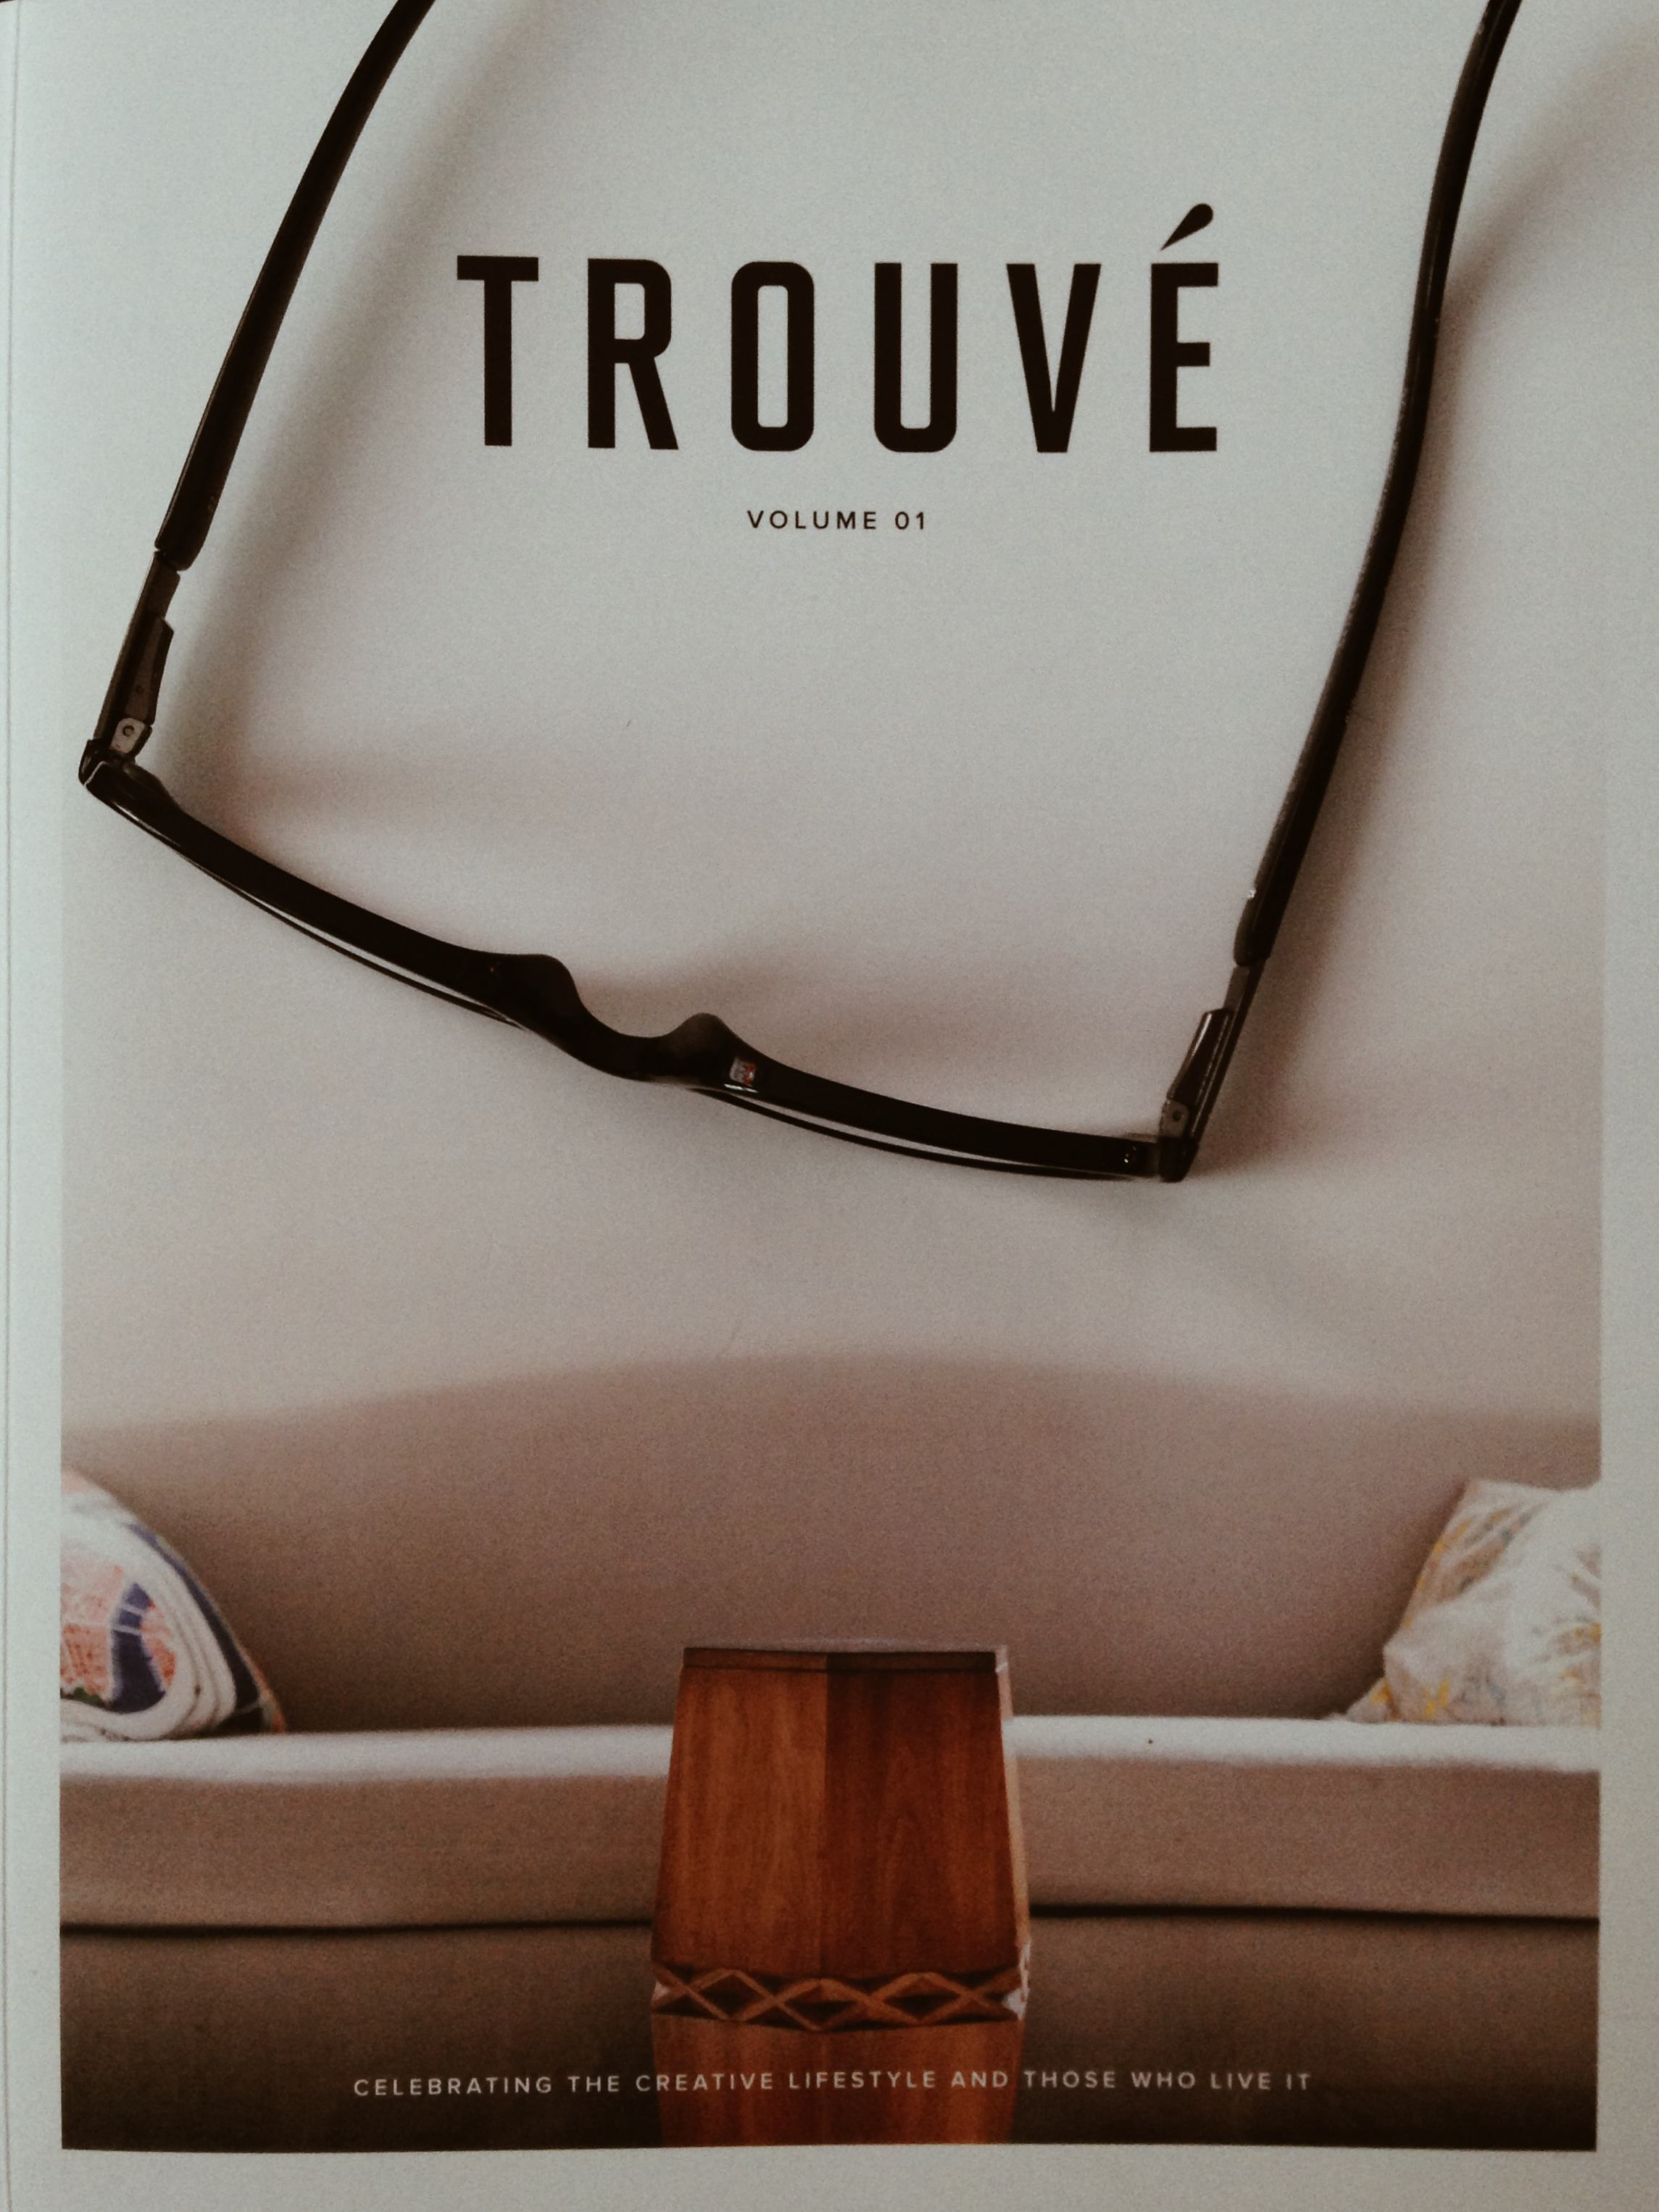 The cover of Trouvé shown with my reading glasses.